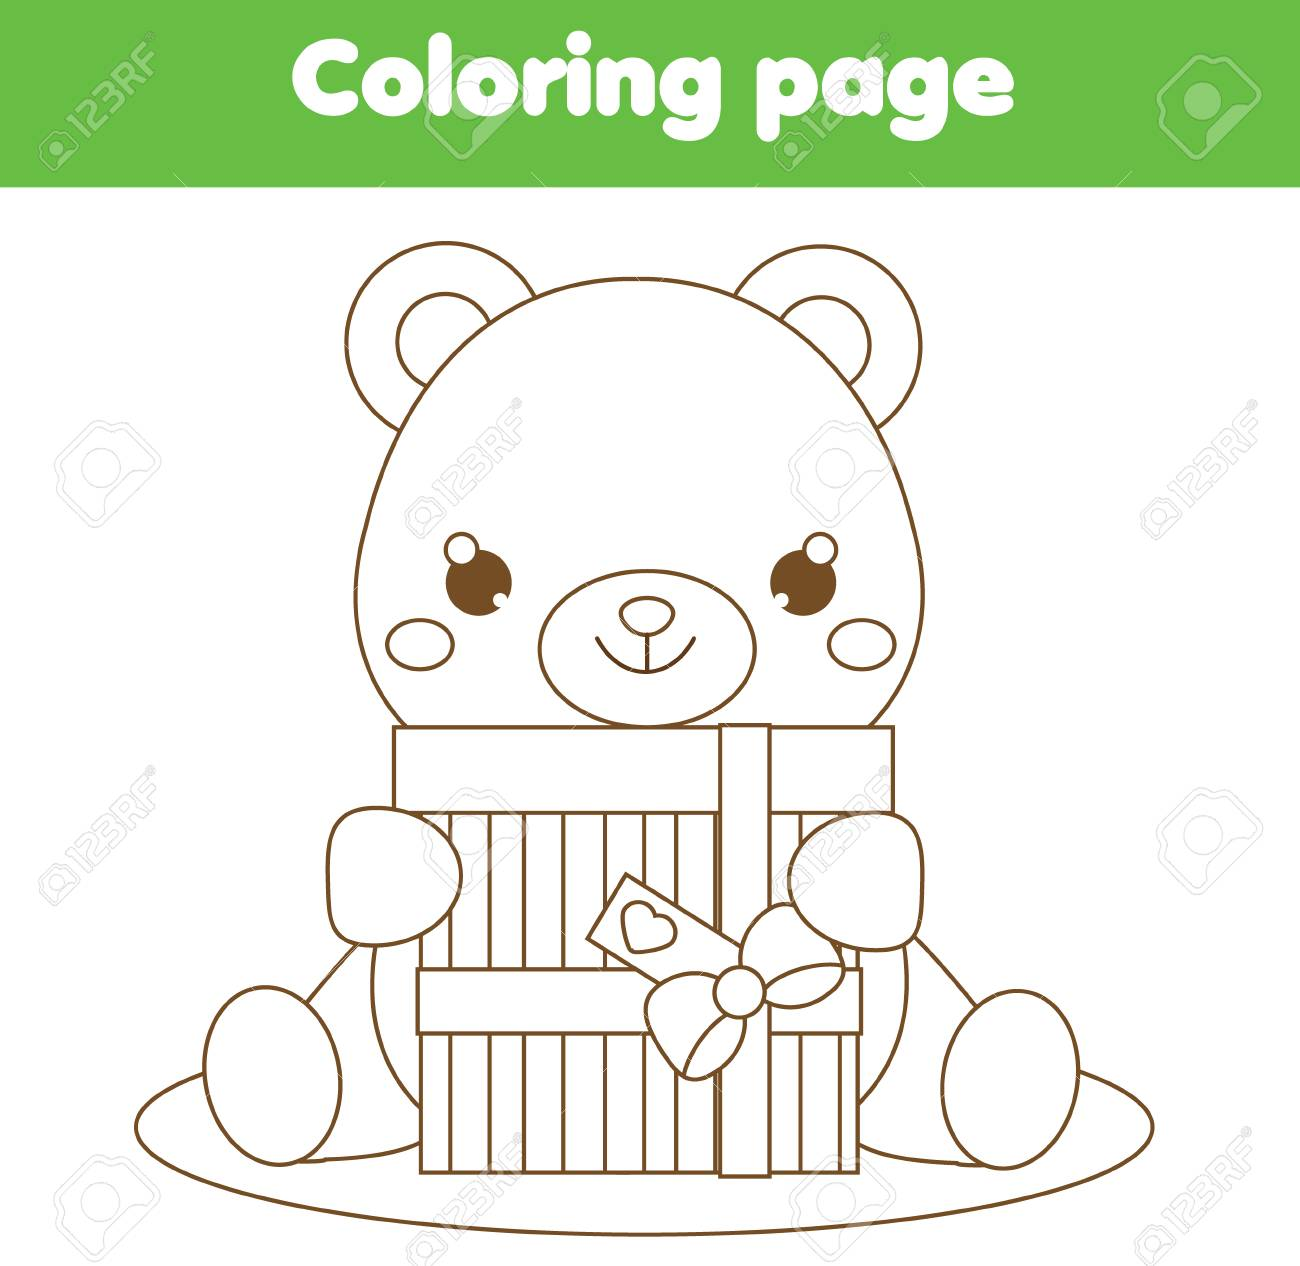 Free Printable Teddy Bear Coloring Pages For Kids   1266x1300